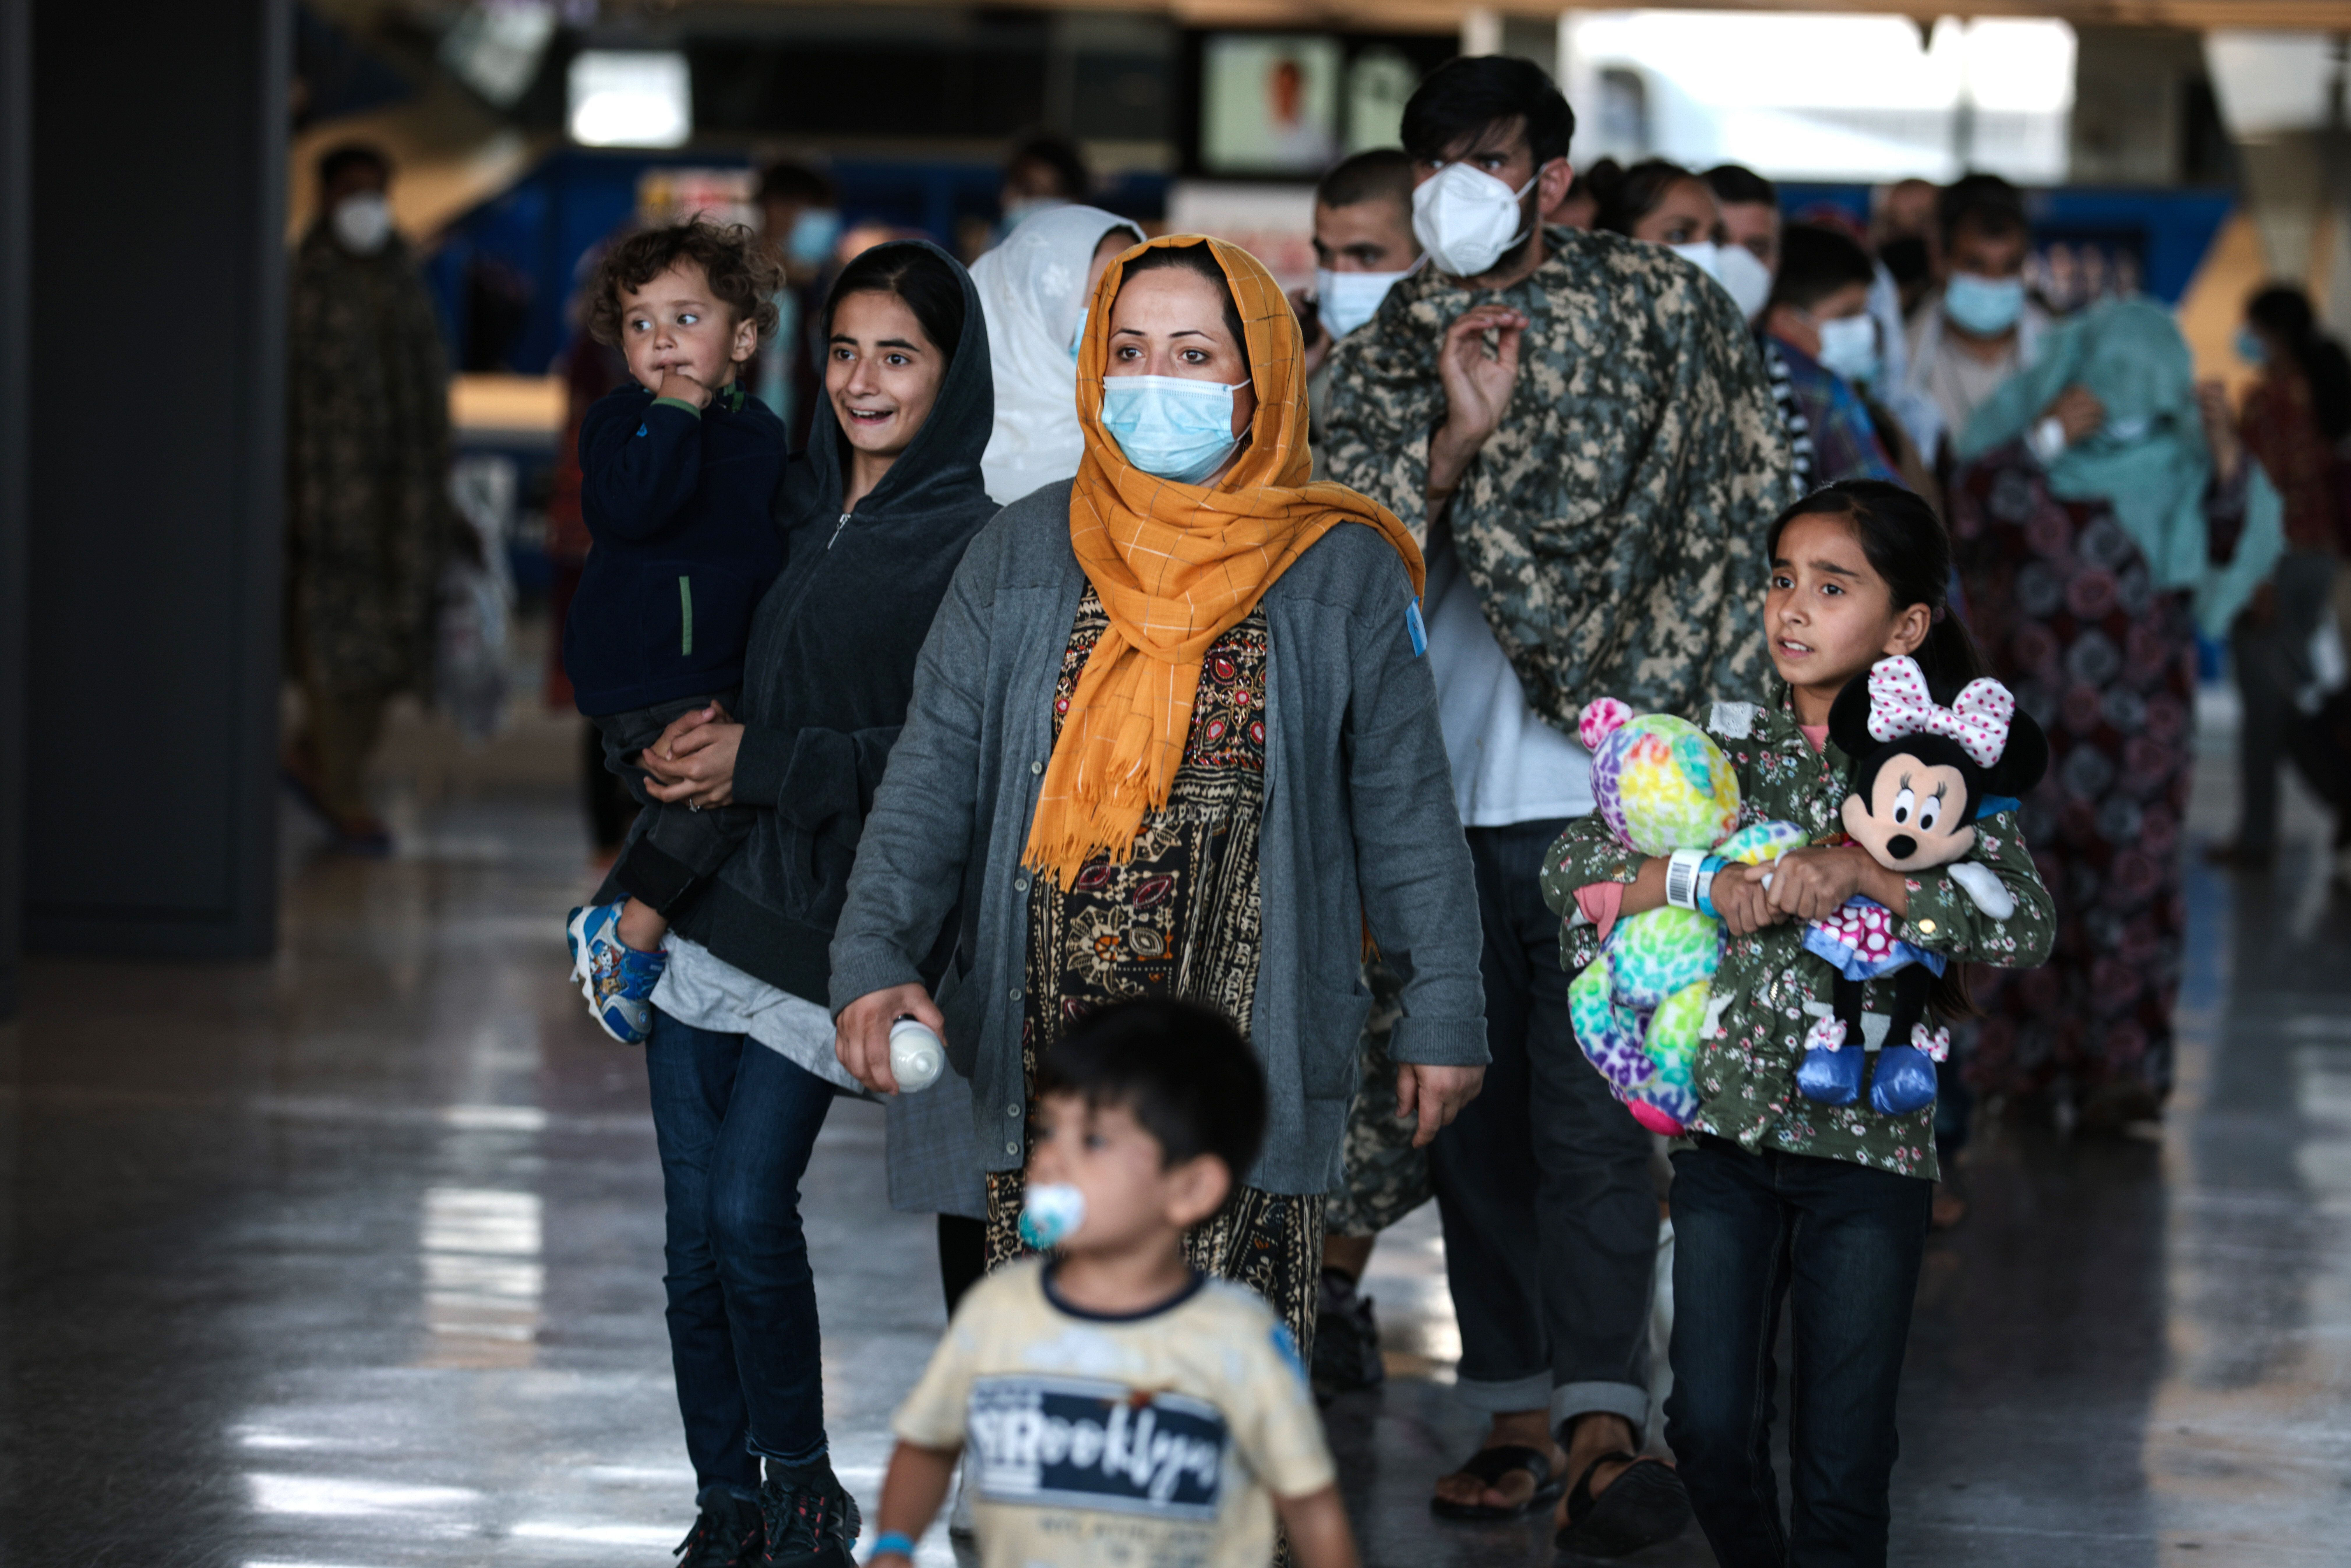 A family of people evacuated from Afghanistan are led through the arrival terminal at the Dulles International Airport to boa